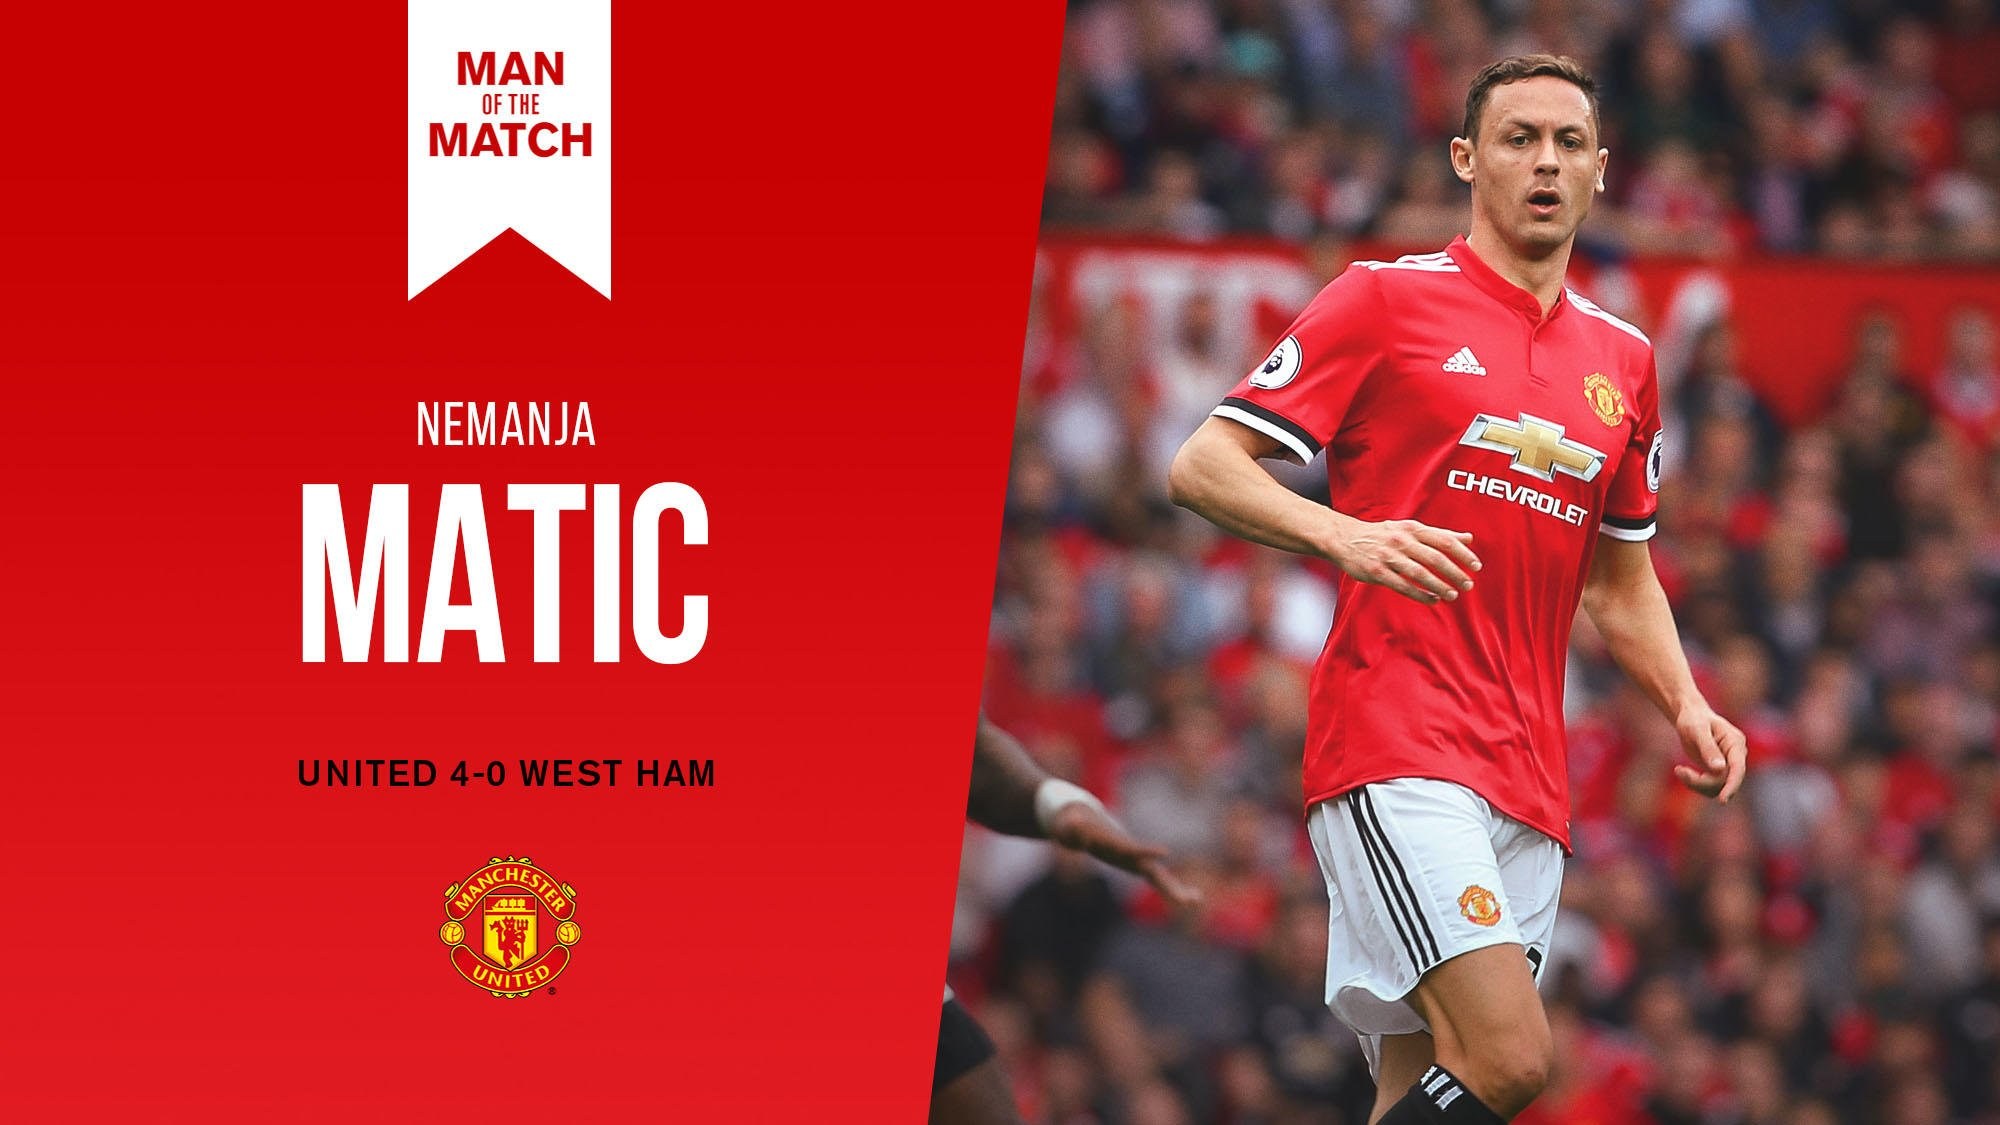 A dominant midfield display on his @PremierLeague debut for #MUFC - Nemanja Matic is today's Man of the Match! �� https://t.co/FadY1riur5